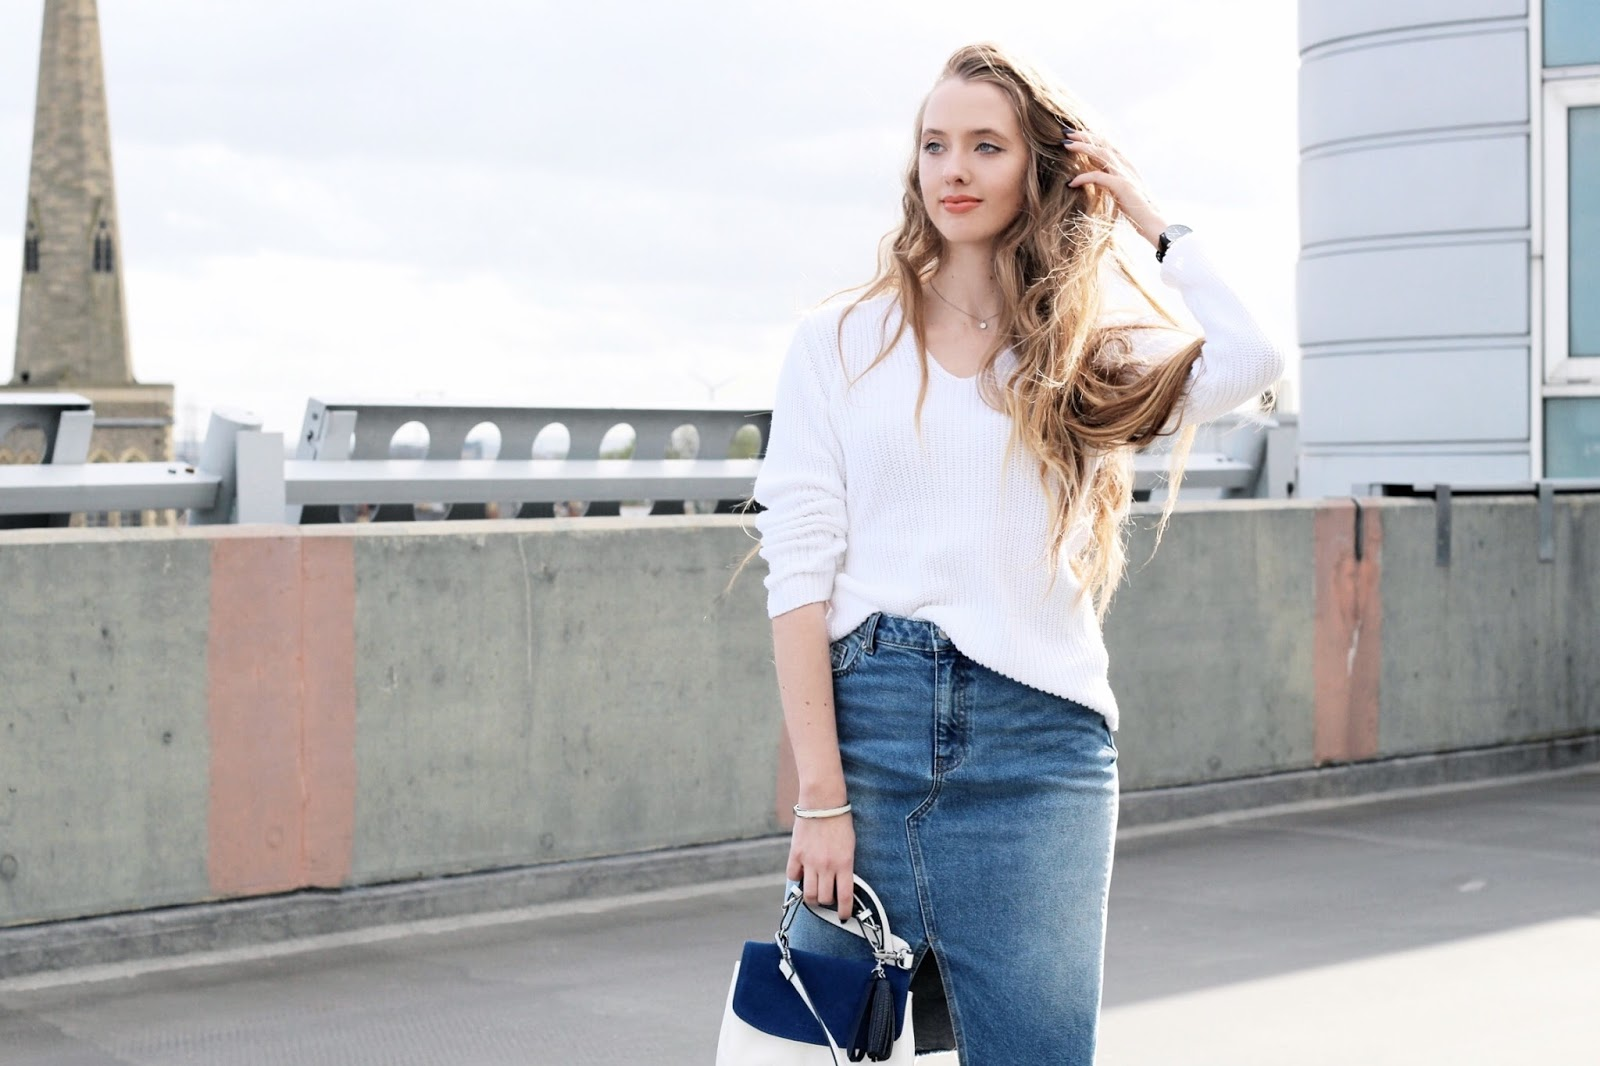 Double Denim Styling a Pencil Skirt